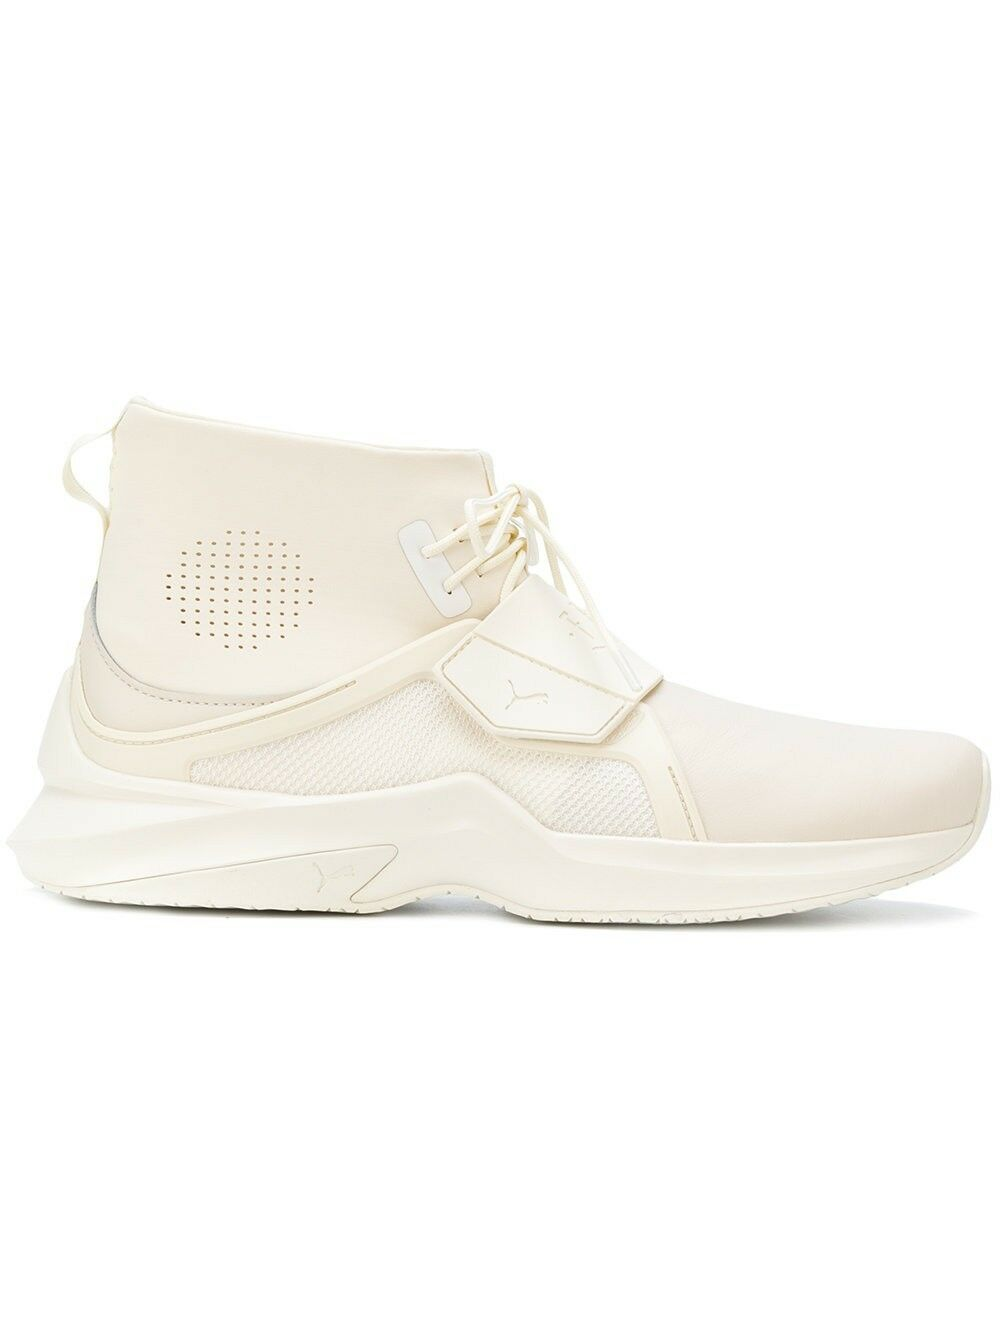 New Sz Whisper 10 Rihanna Puma Fenty Trainer Hi  Whisper Sz Off White 191001-04 f98b31